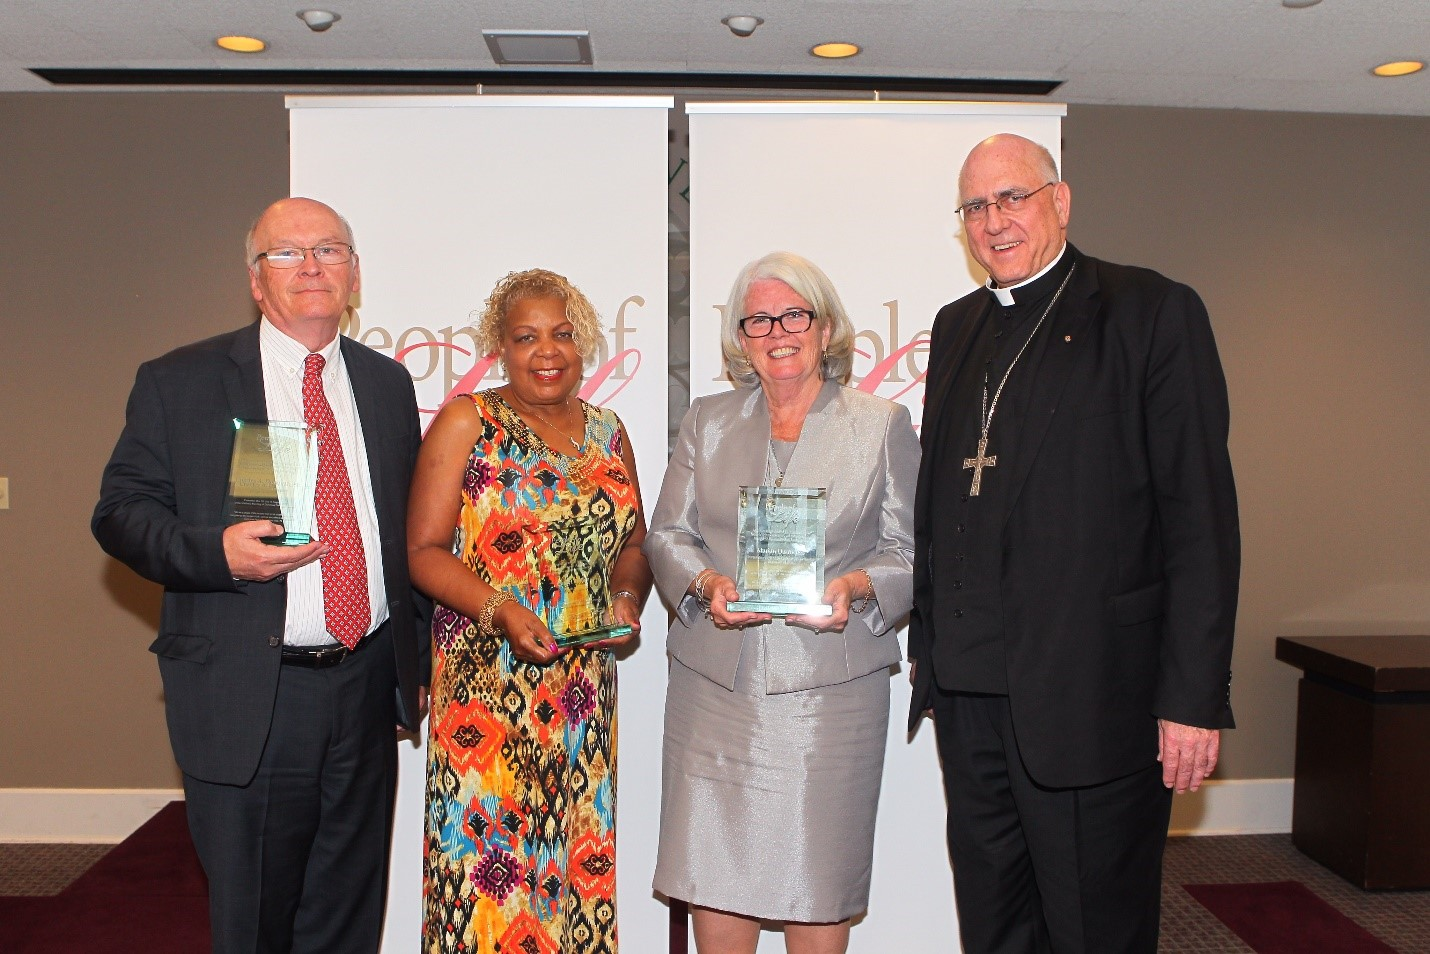 (Left to Right) People of Life awardees Chuck Donovan, Cheryl Holley and Marian Desrosiers with Archbishop Naumann, Chairman of the US Bishops' Committee on Pro-Life Activities Photo Credit: Tim Porco